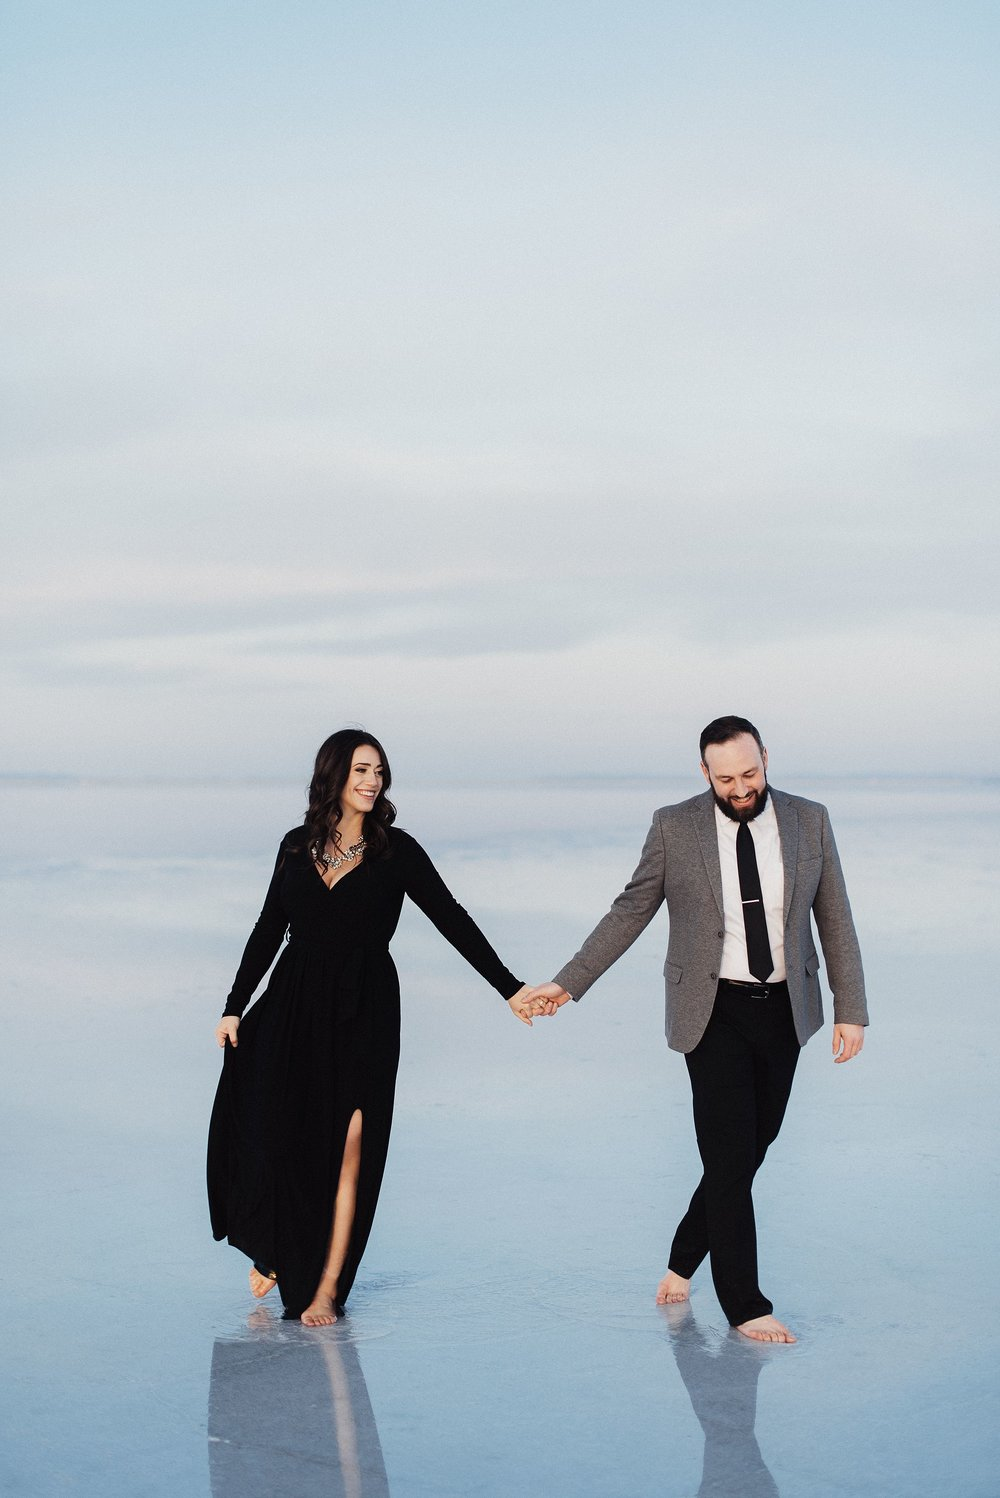 Classic Engagements at the Salt Flats